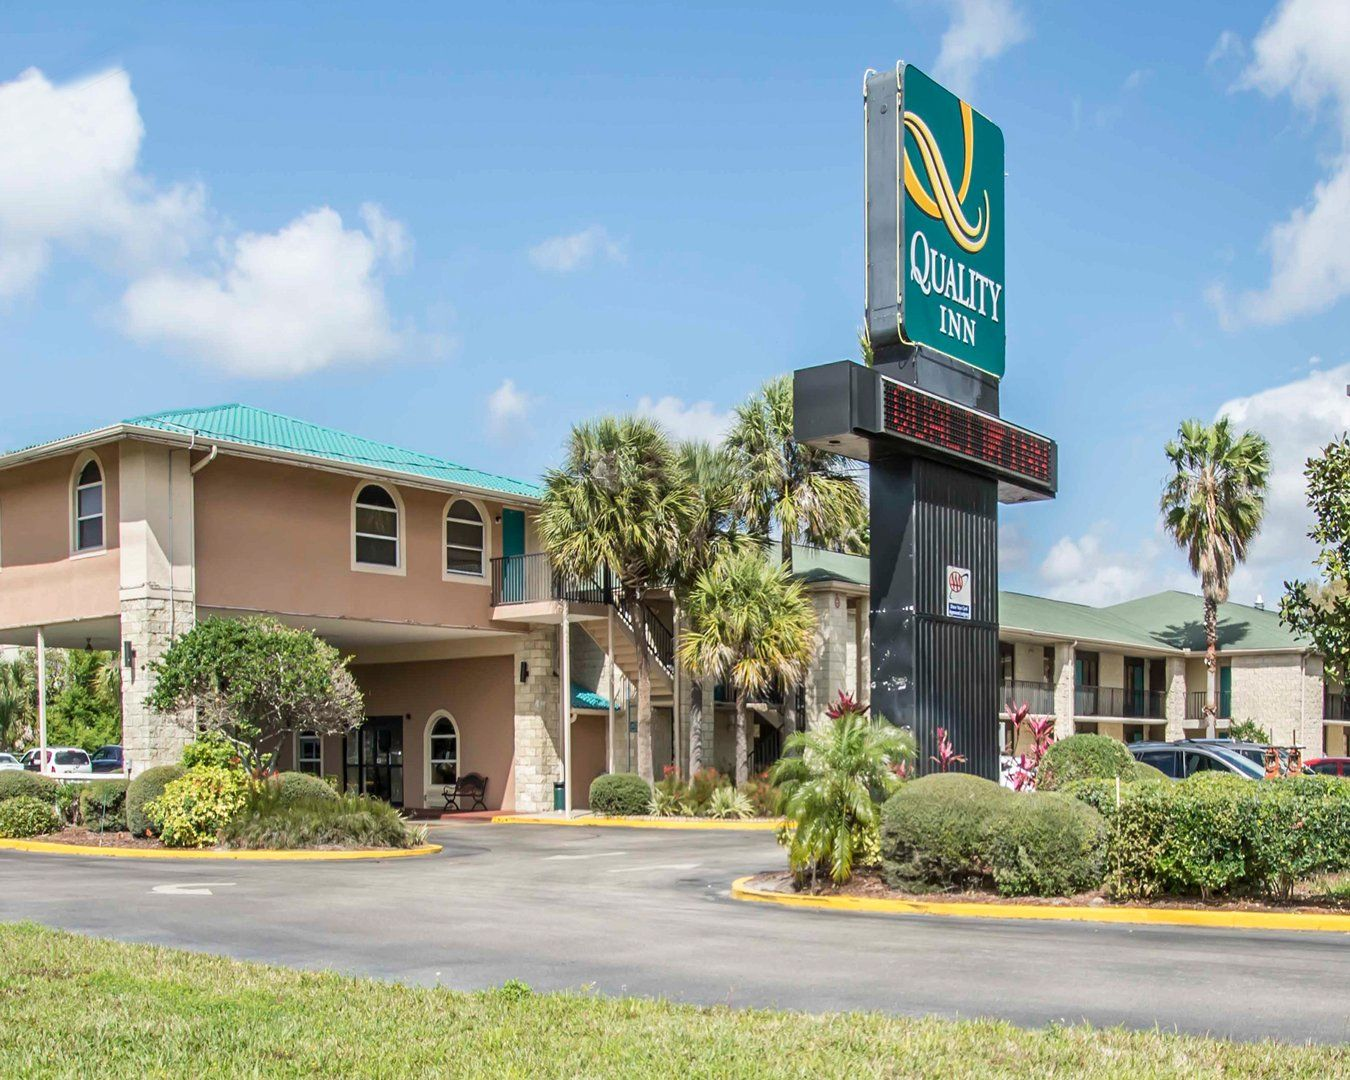 Quality Inn Orlando Airport Hotel Near Universal Studios Seaworld S Congo River Wet